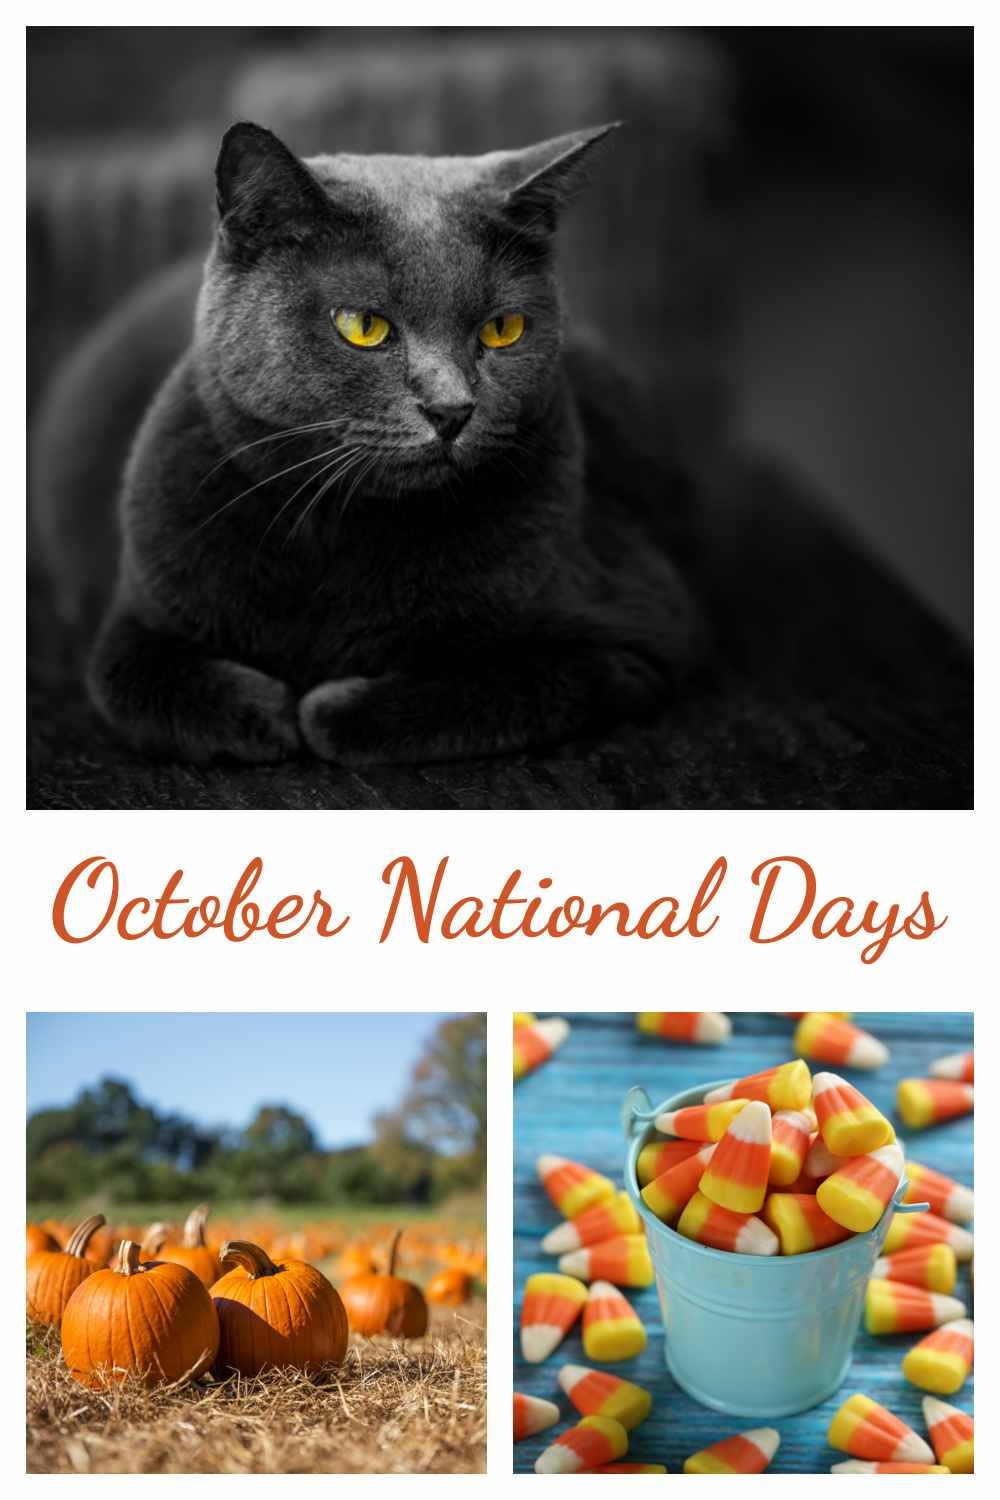 Black cat, pumpkins and candy corn in a collage with words October National Days.